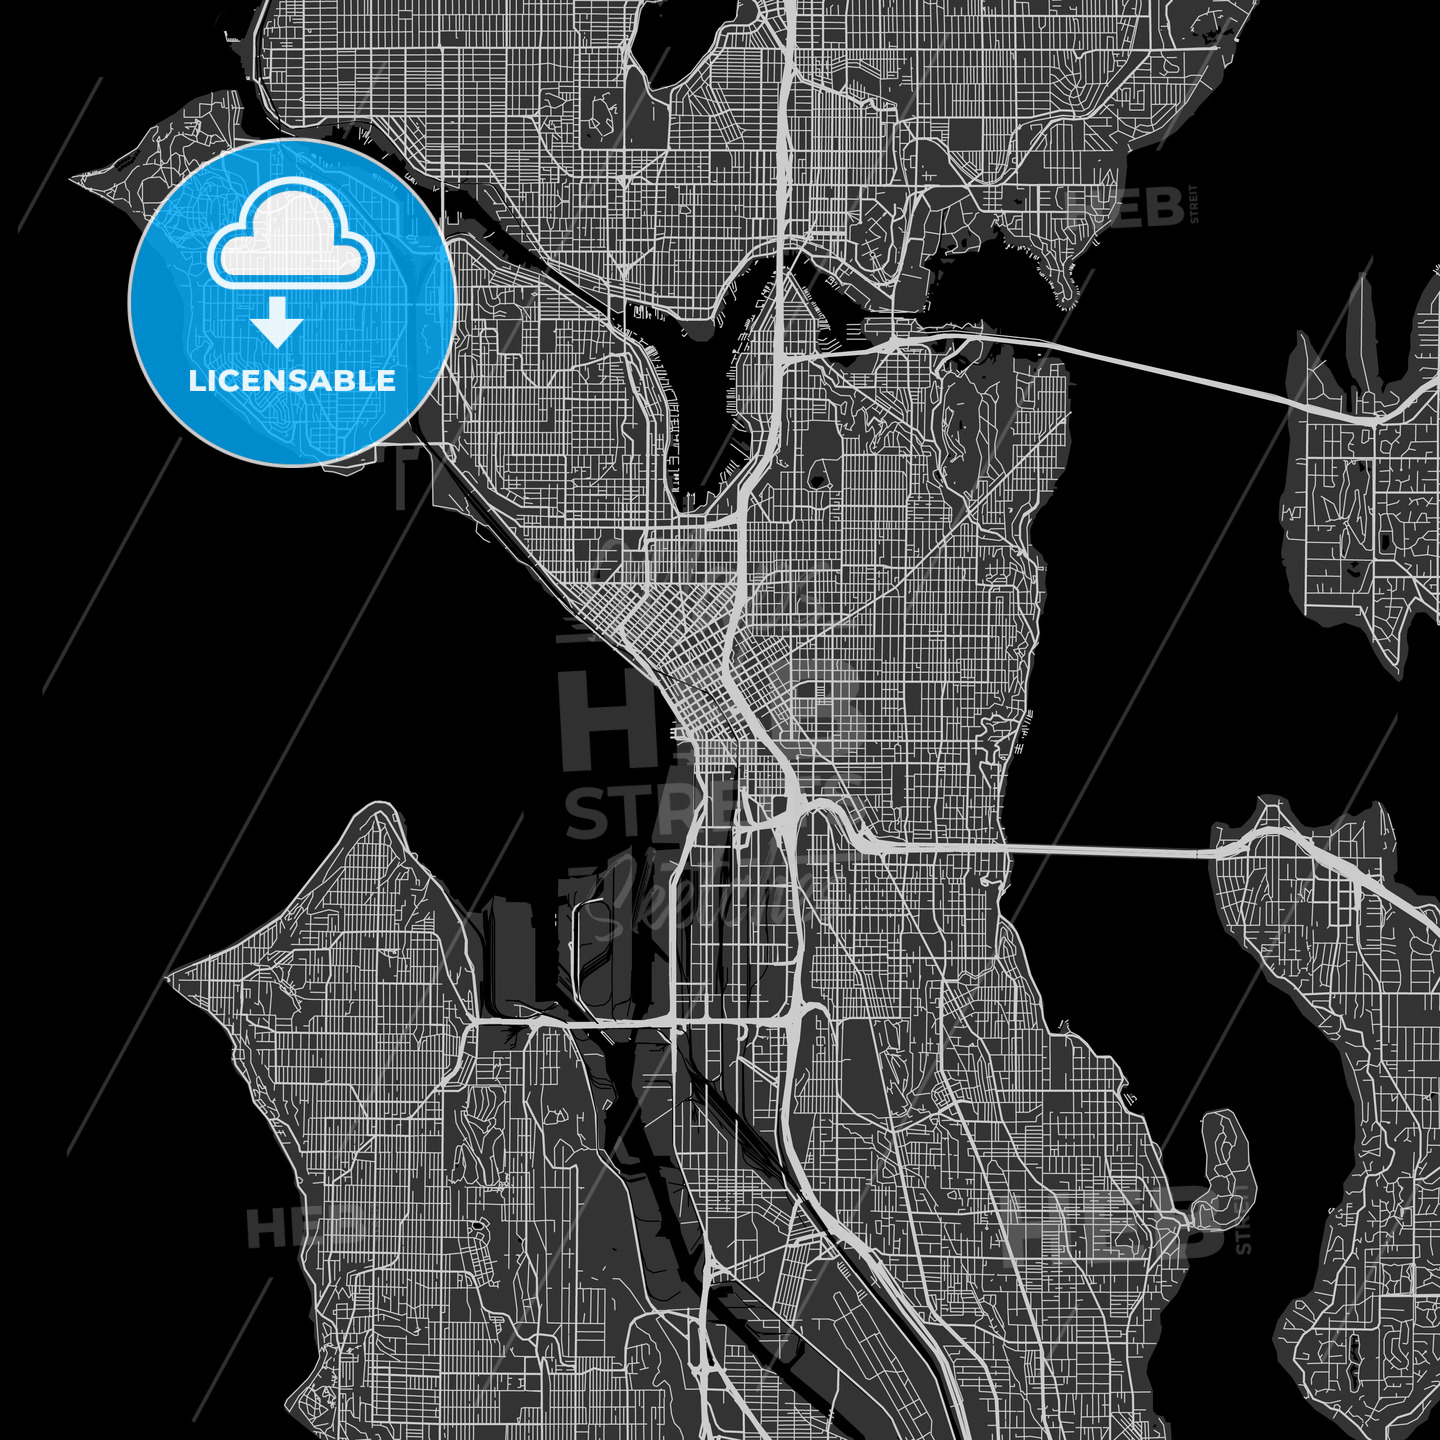 Seattle, Washington - Area Map - Dark on sound transit, seattle and surrounding islands, seattle community map, king county, seattle time zone map, seattle washington, seattle vicinity map, washington map, seattle neighborhood map, snohomish county map, puget sound map, greater seattle map, florida map, seattle walking map, puget sound region, new york metropolitan area, port townsend, lake washington, king county map, dallas/fort worth metroplex, seattle airport map, downtown seattle map, tacoma map, downtown seattle, kirkland map, seattle visitors map, pierce county, seattle design map, puget sound, woodinville map, phoenix metropolitan area,